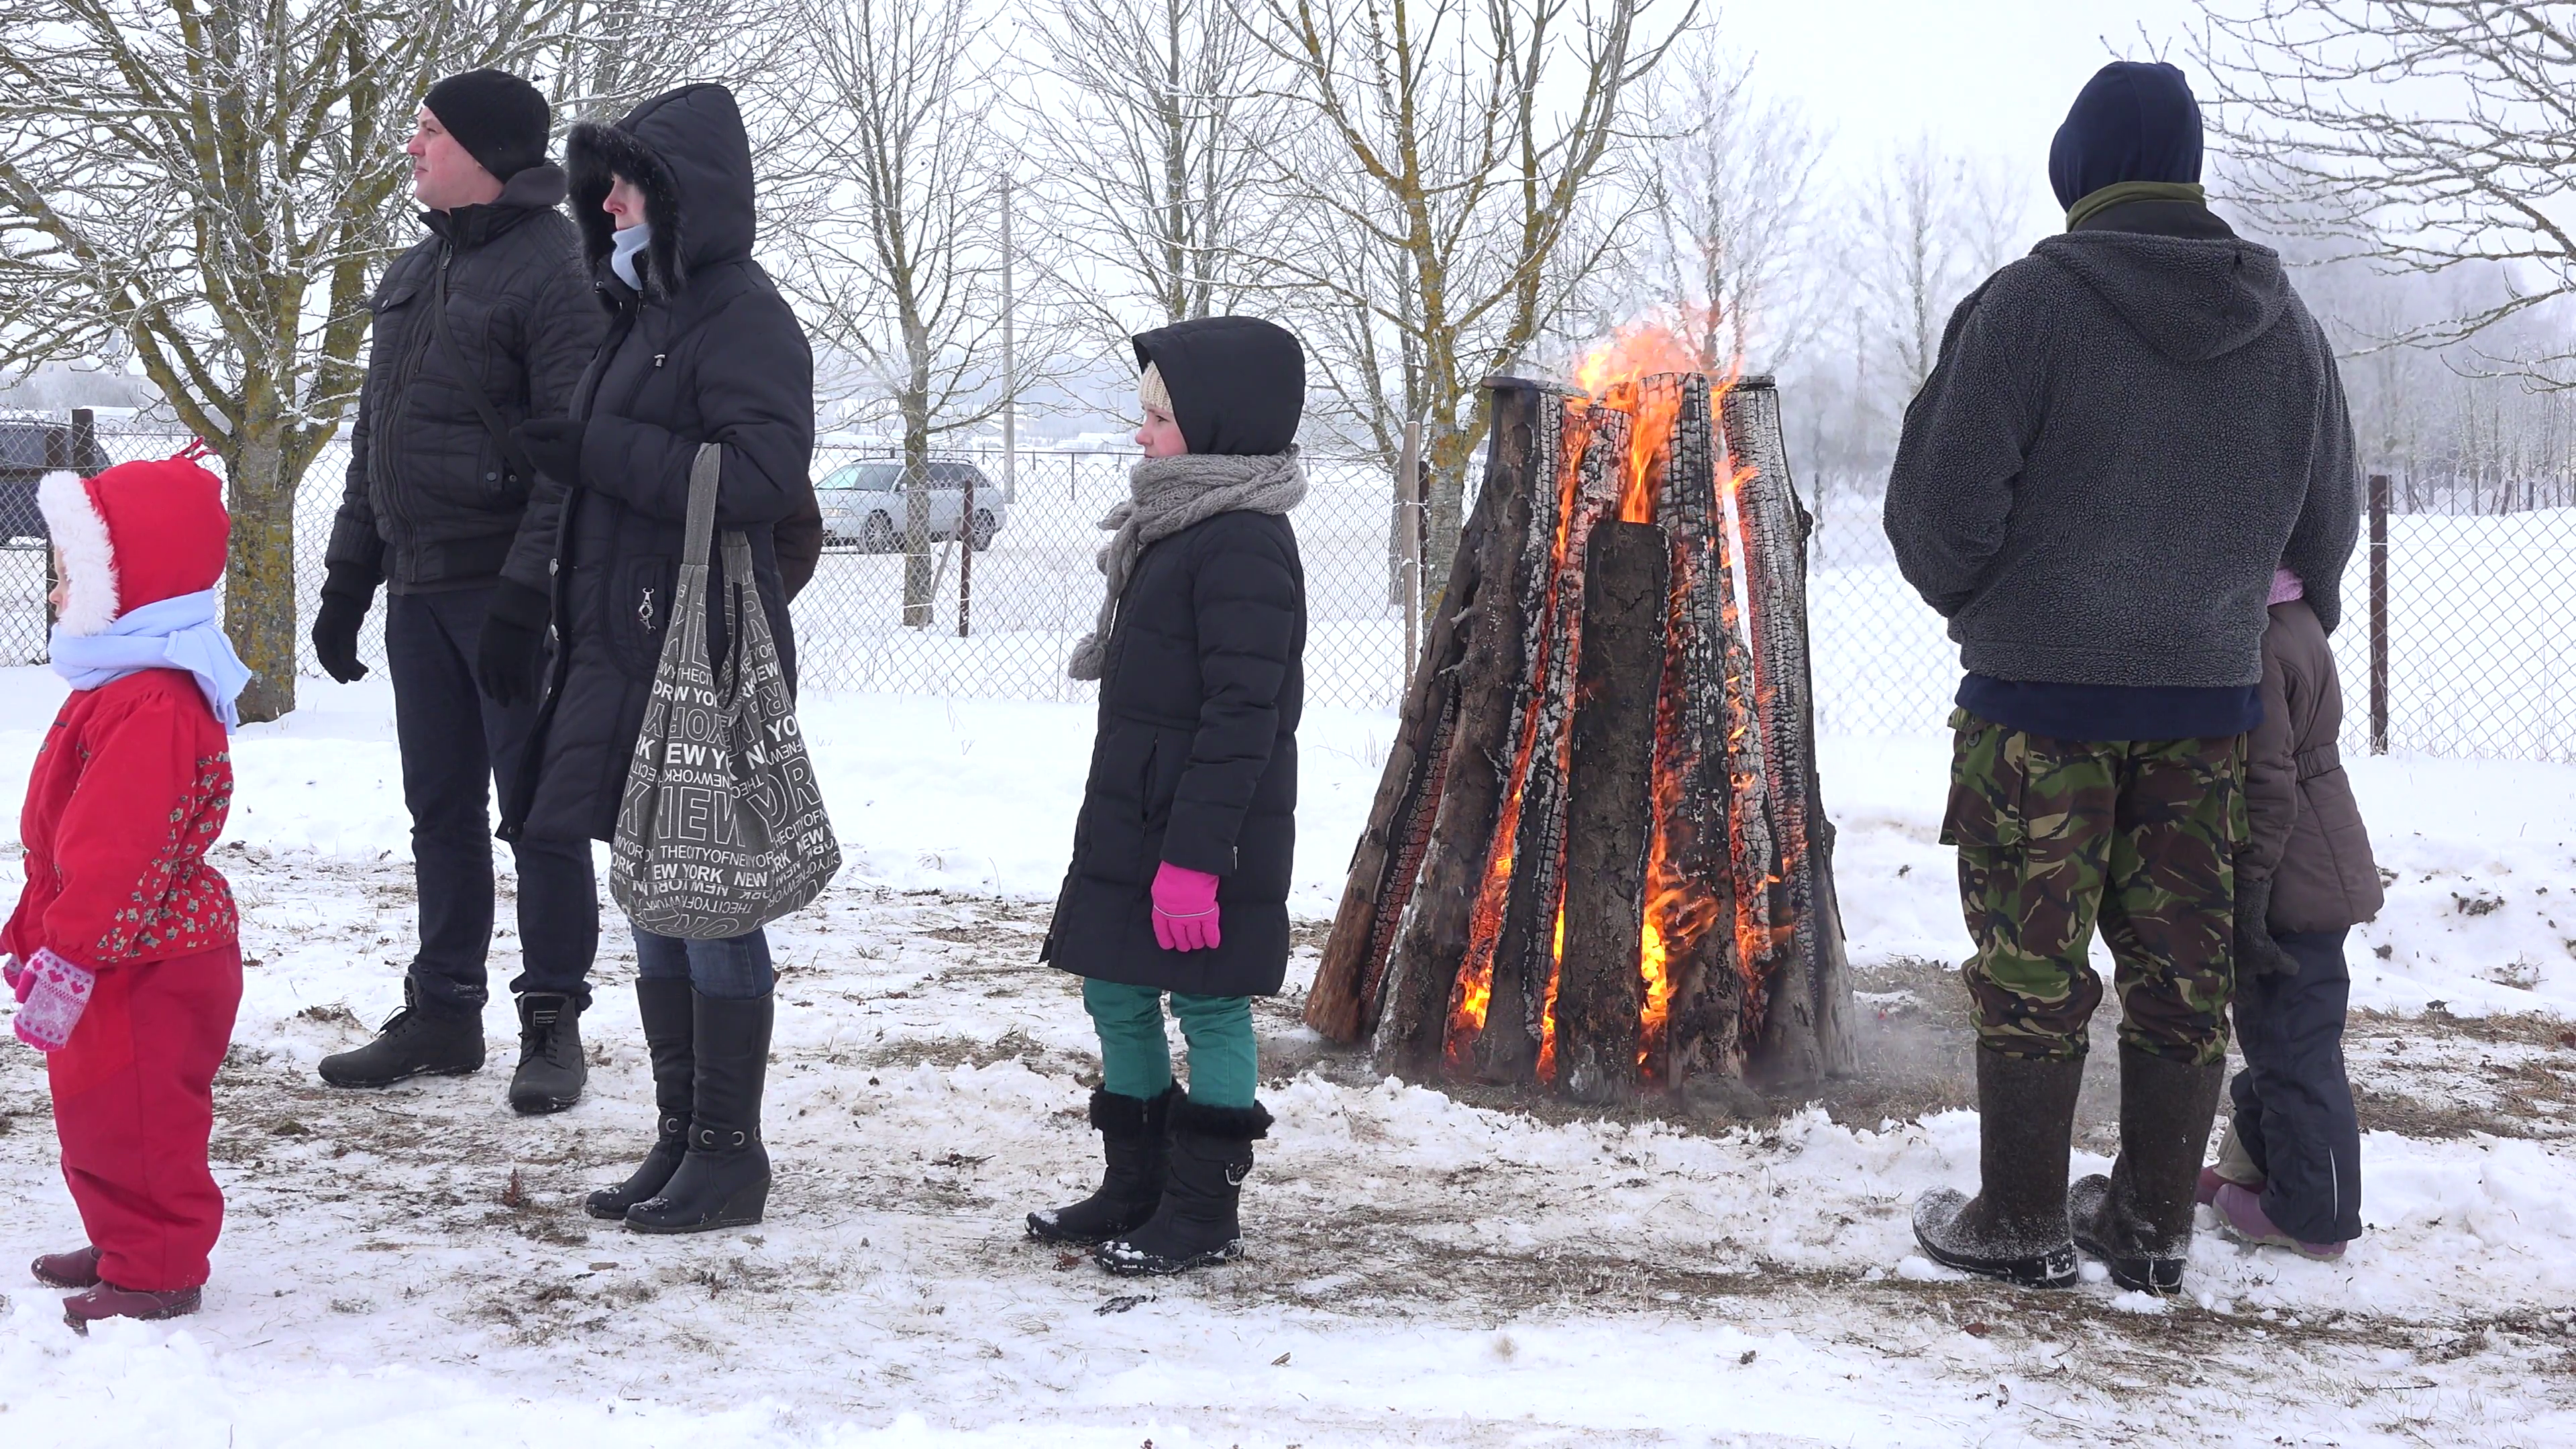 People warm near huge fire place in cold winter day. 4K Stock Video Footage  - VideoBlocks - People In Cold Winter PNG